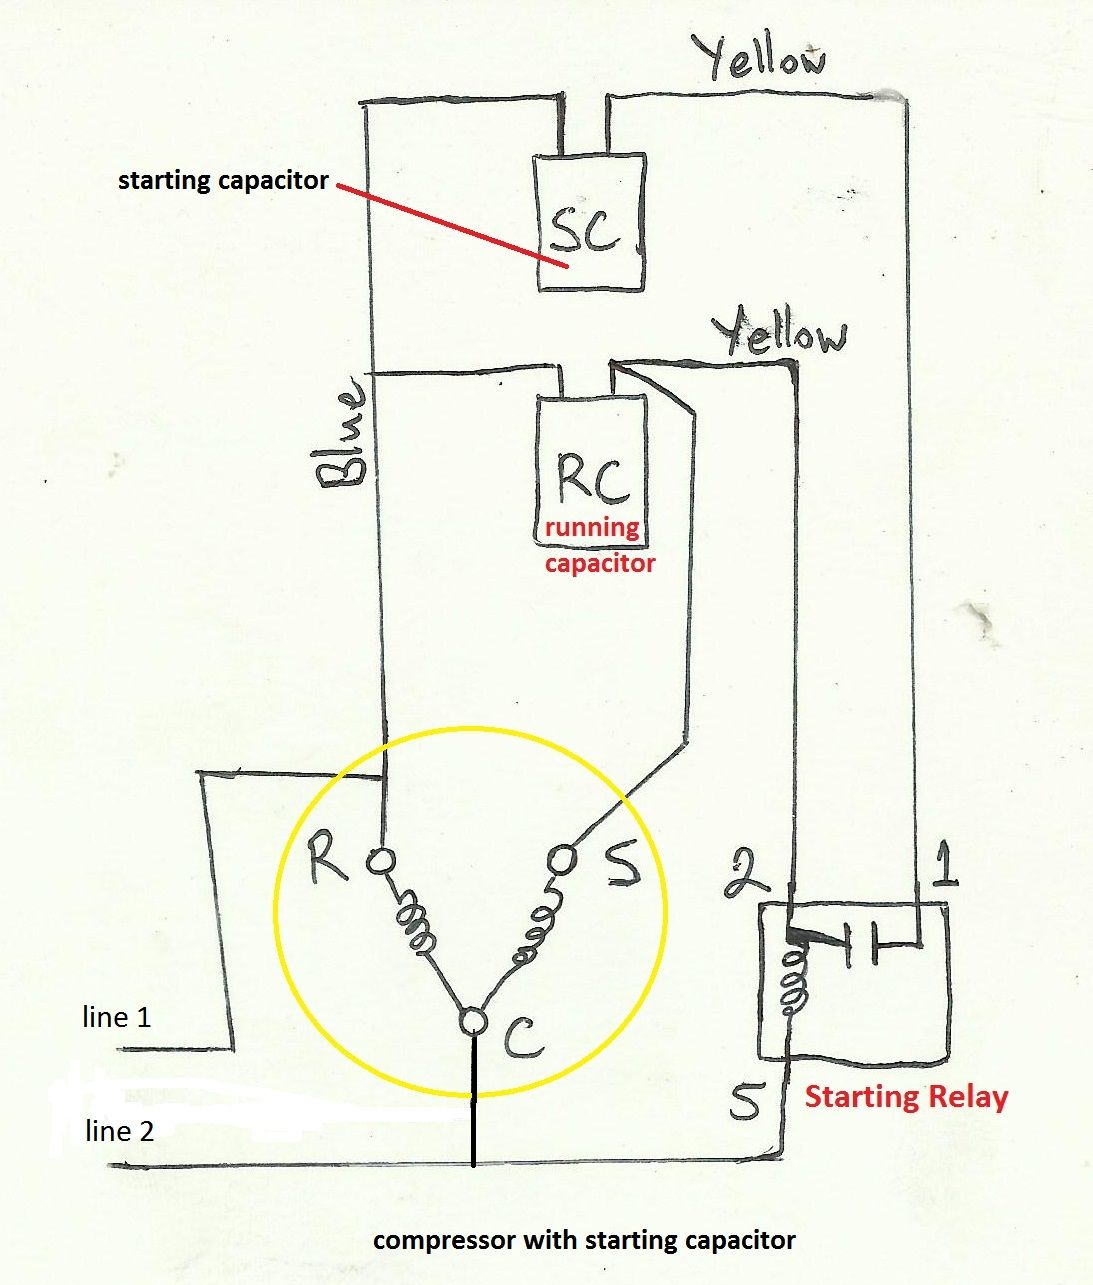 Wiring Diagram For 220v Air Compressor | Wiring Diagram Automotive on electrical panel diagram, 3 phase panel grounding diagram, three panel diagram, 3 phase breaker box diagram, 120 208 3 phase diagram, solar panel hook up diagram, 3 phase generator wiring connections, 3 phase transformer connection diagram, 3 phase single line diagram, 3 phase starter diagram, 3 phase converter wiring, 3 phase to single phase wiring, 3 phase electric motor wiring, 3 phase vs single phase, 3 phase square d breaker, 3 phase motor circuit diagram, 3 phase electrical circuit diagram, 3 phase wiring for dummies, 3 phase wiring chart, 3 phase sub panel,